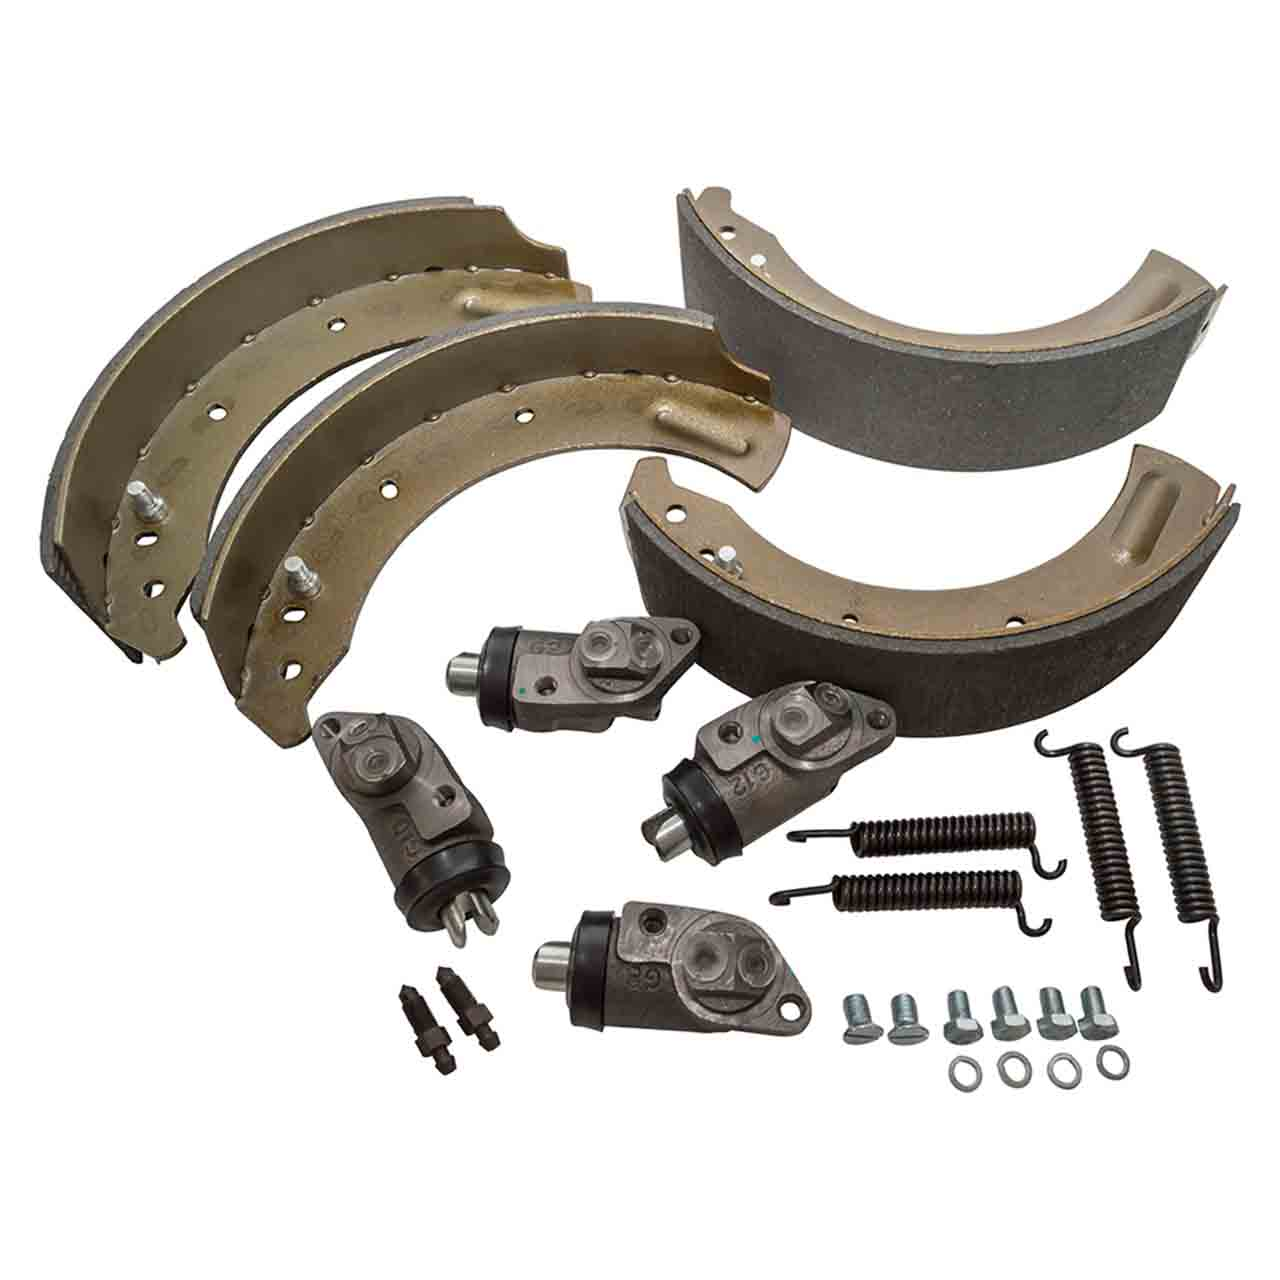 Kit Freno Anteriore Serie Series 1 2 3 Land Rover GR2-08175